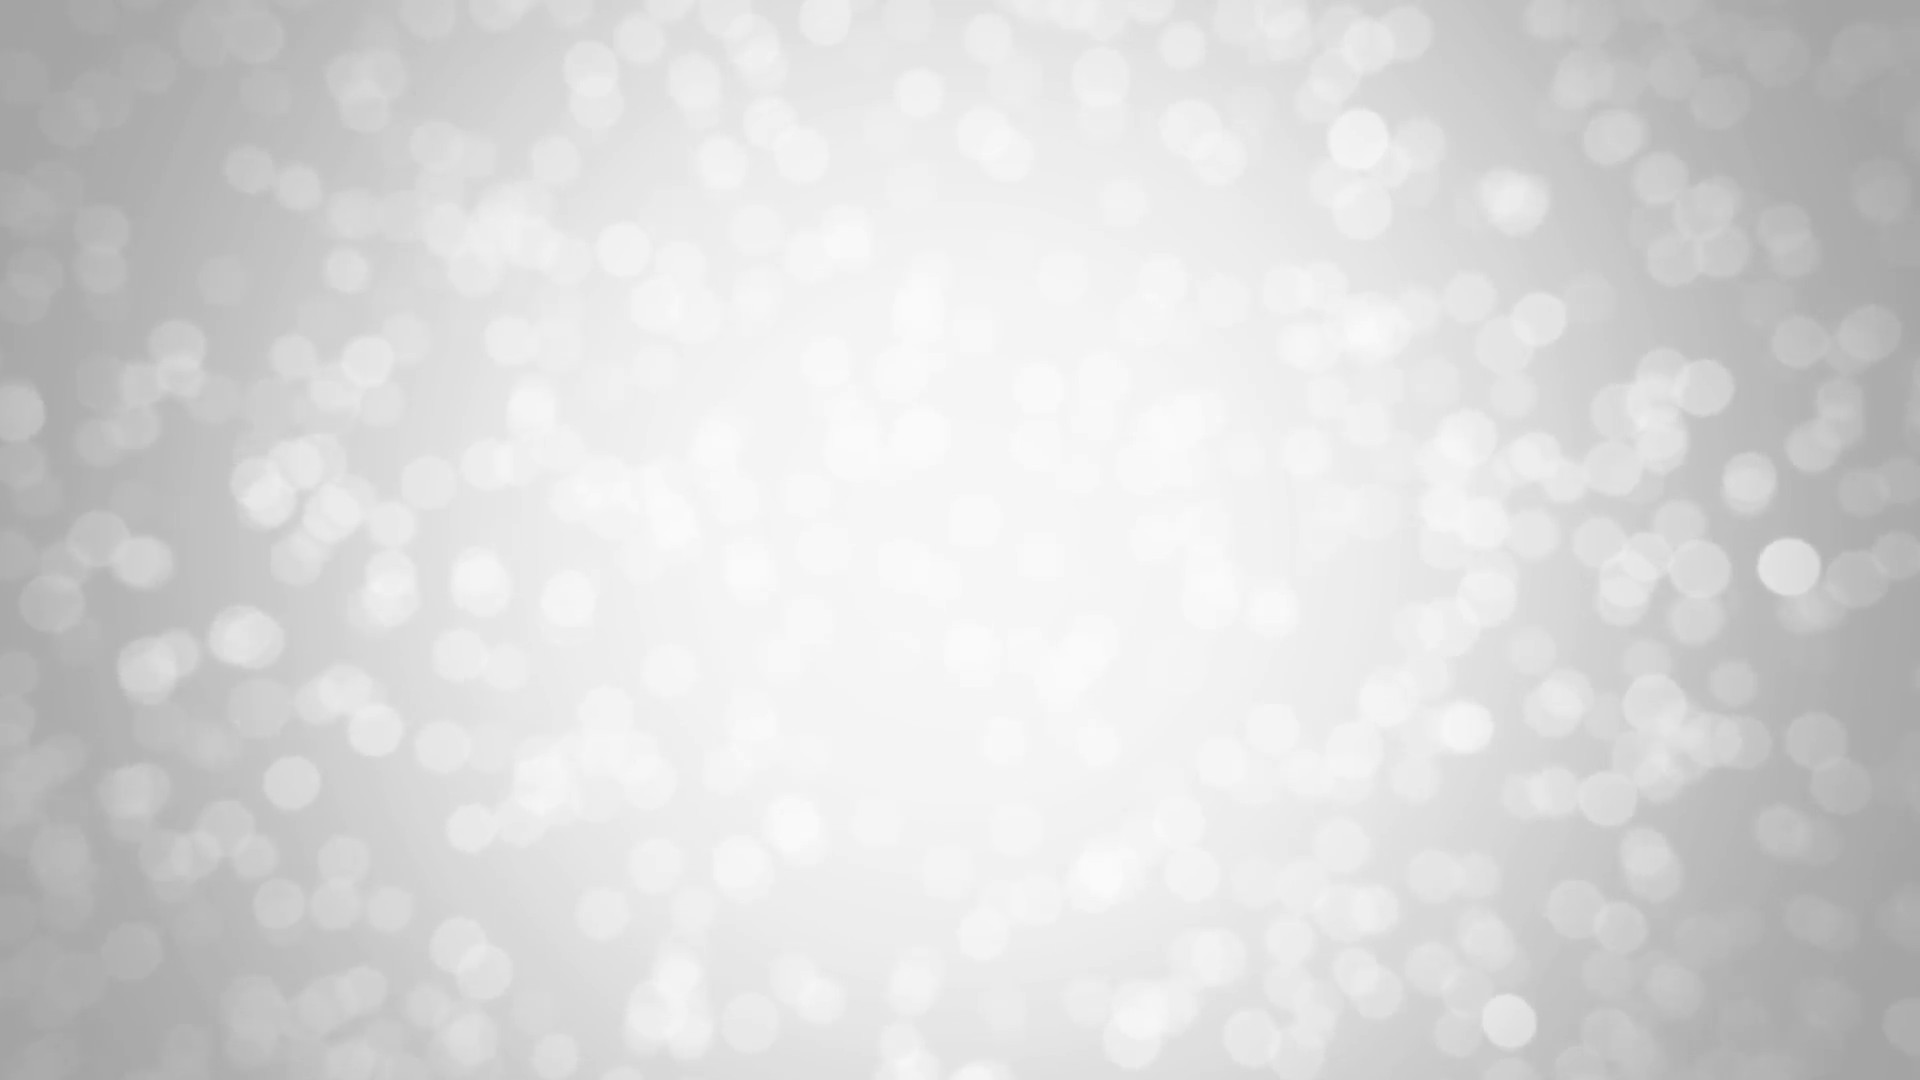 Falling Snow Live Wallpaper For Iphone White Glitter Background 183 ① Download Free Hd Backgrounds